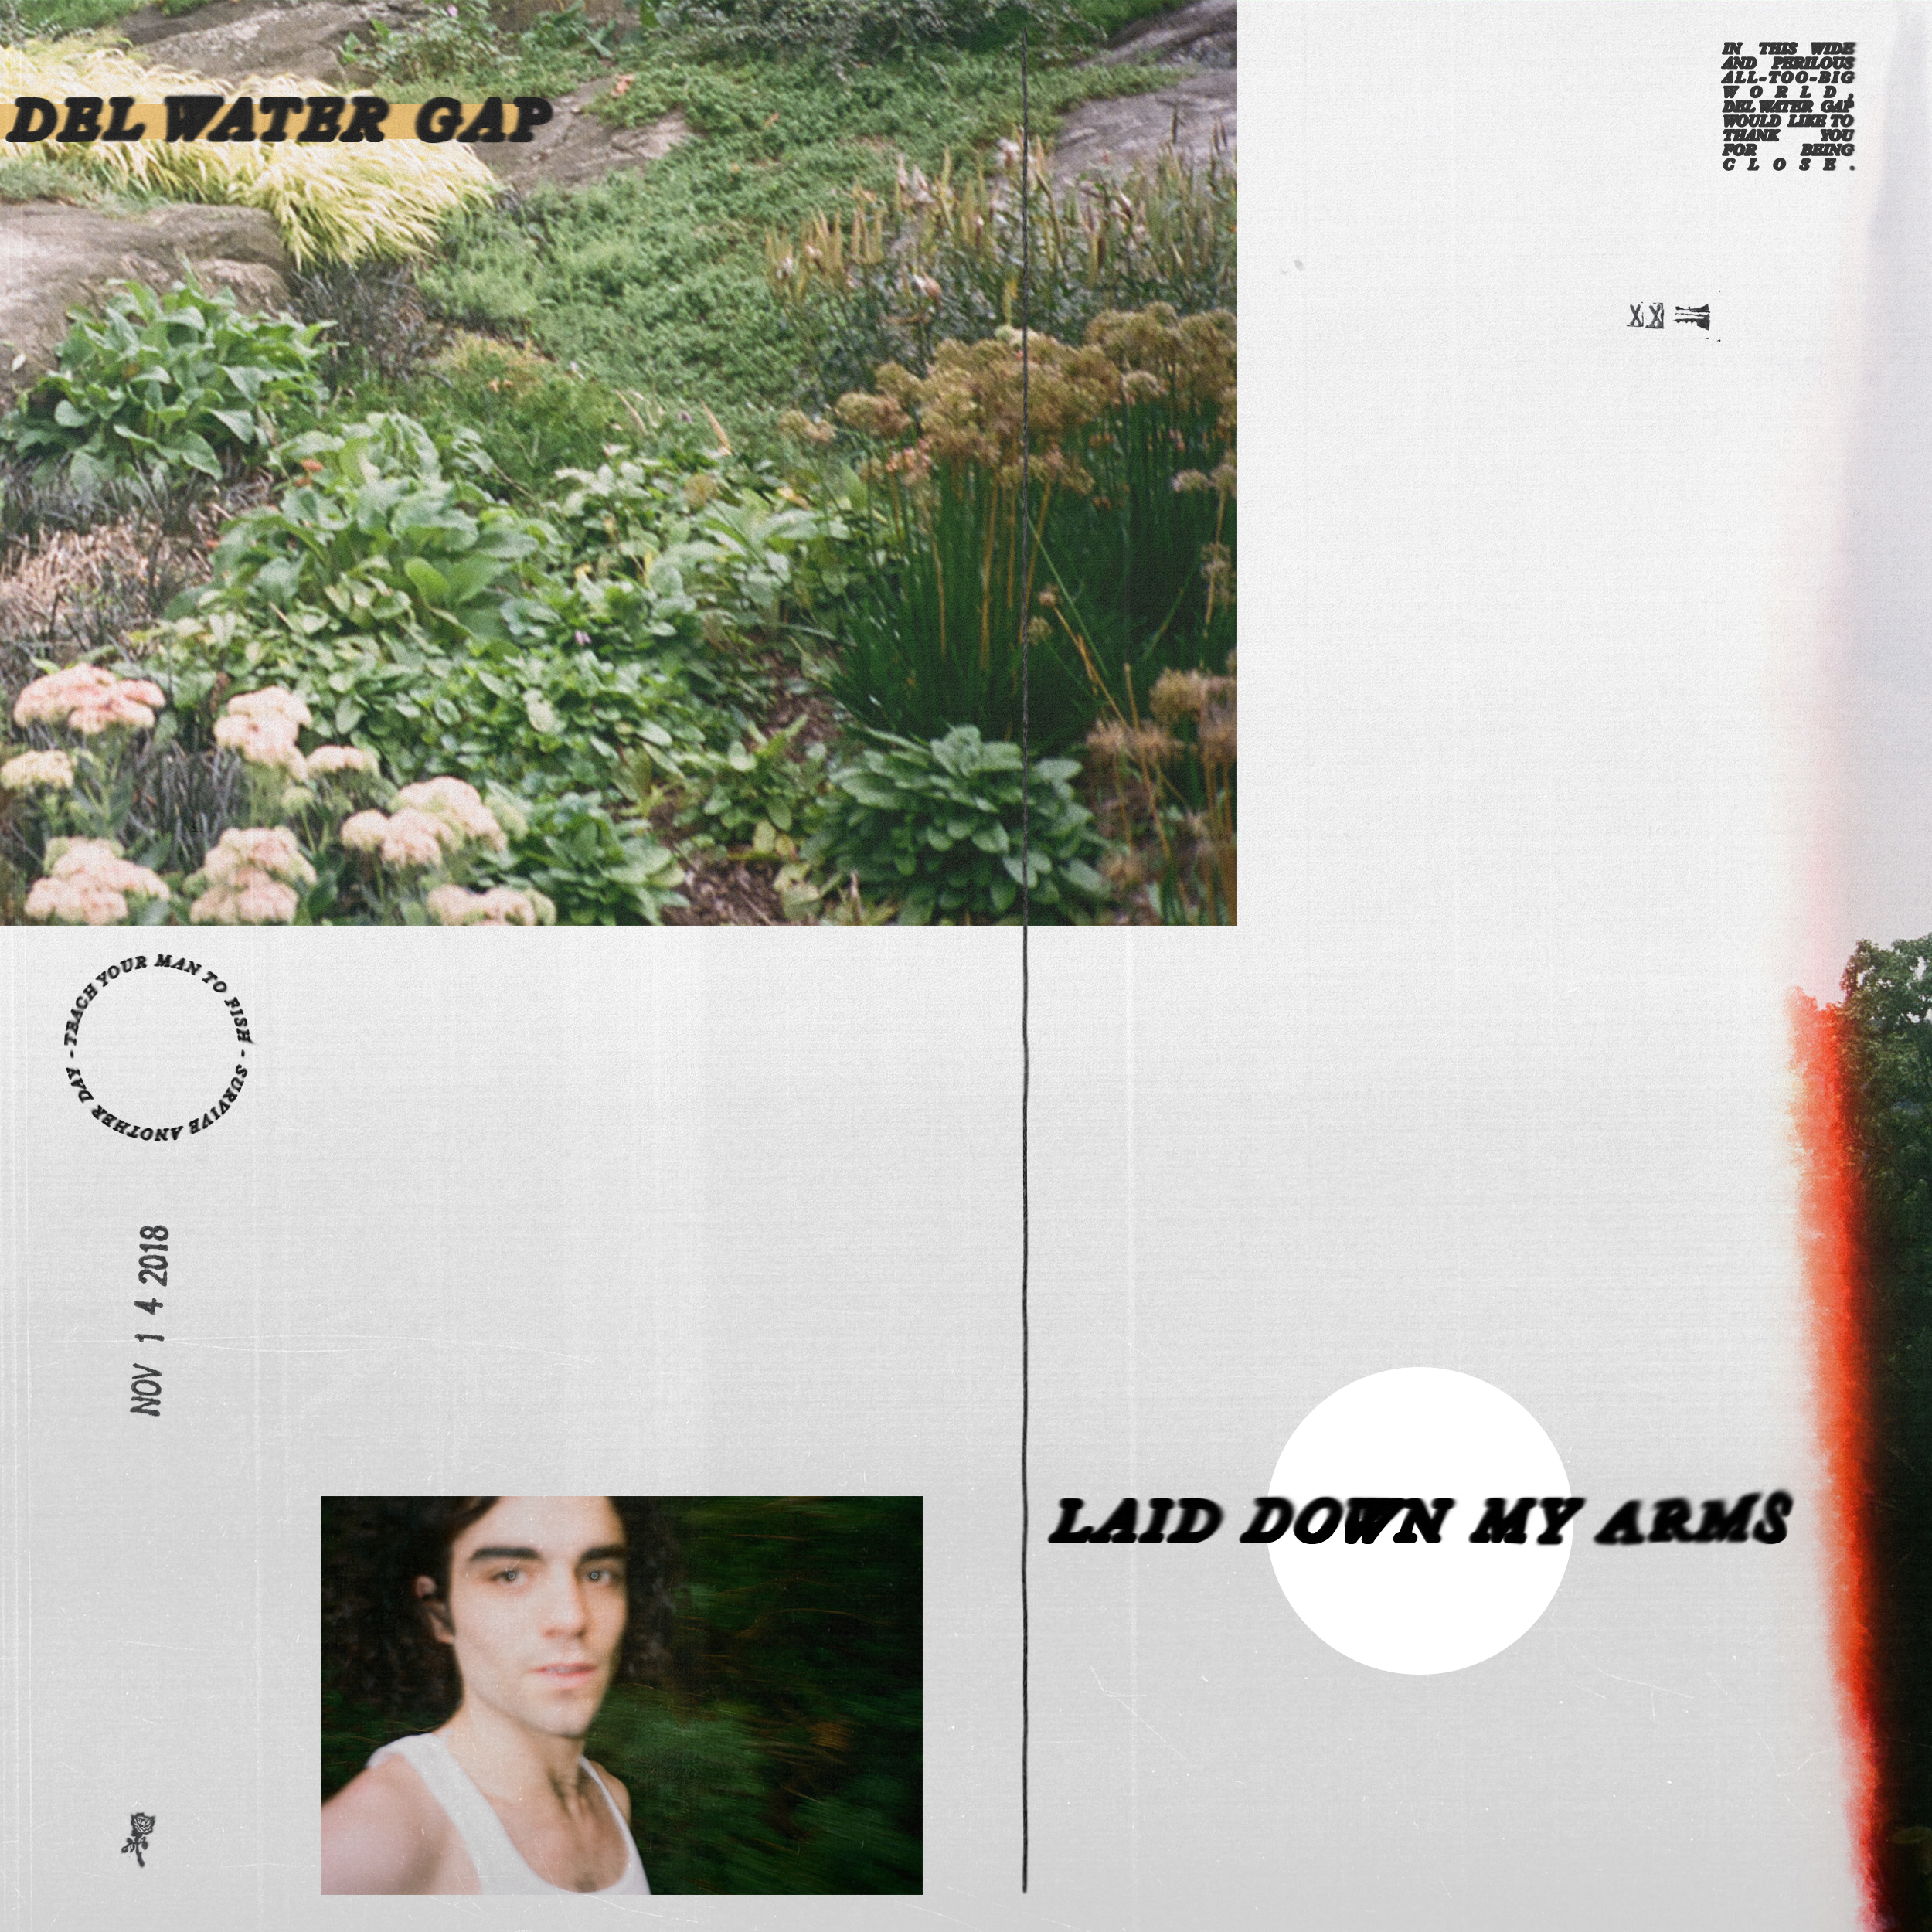 Del Water Gap - Laid Down My Arms